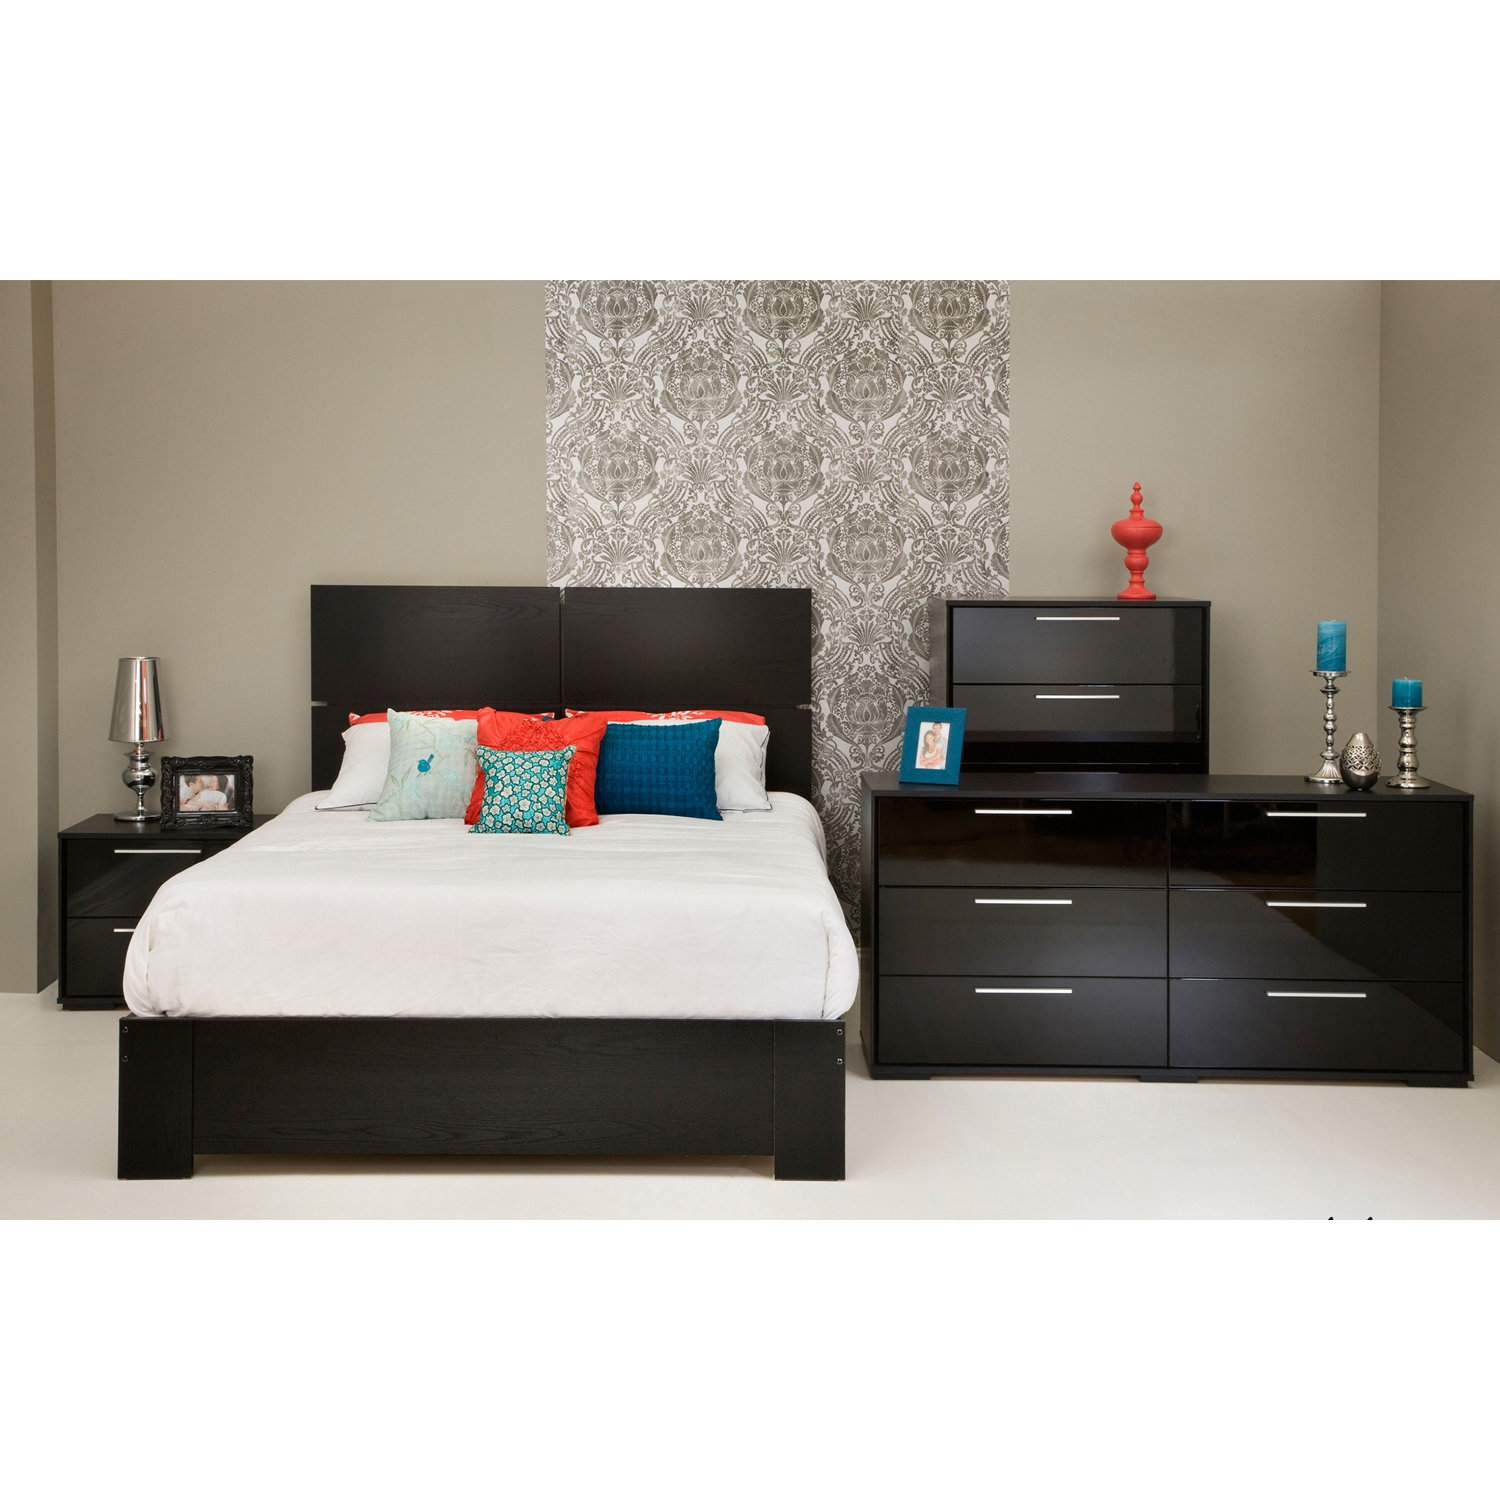 Mikka 2 Drawers Nightstand - Black Oak - SS-3541060